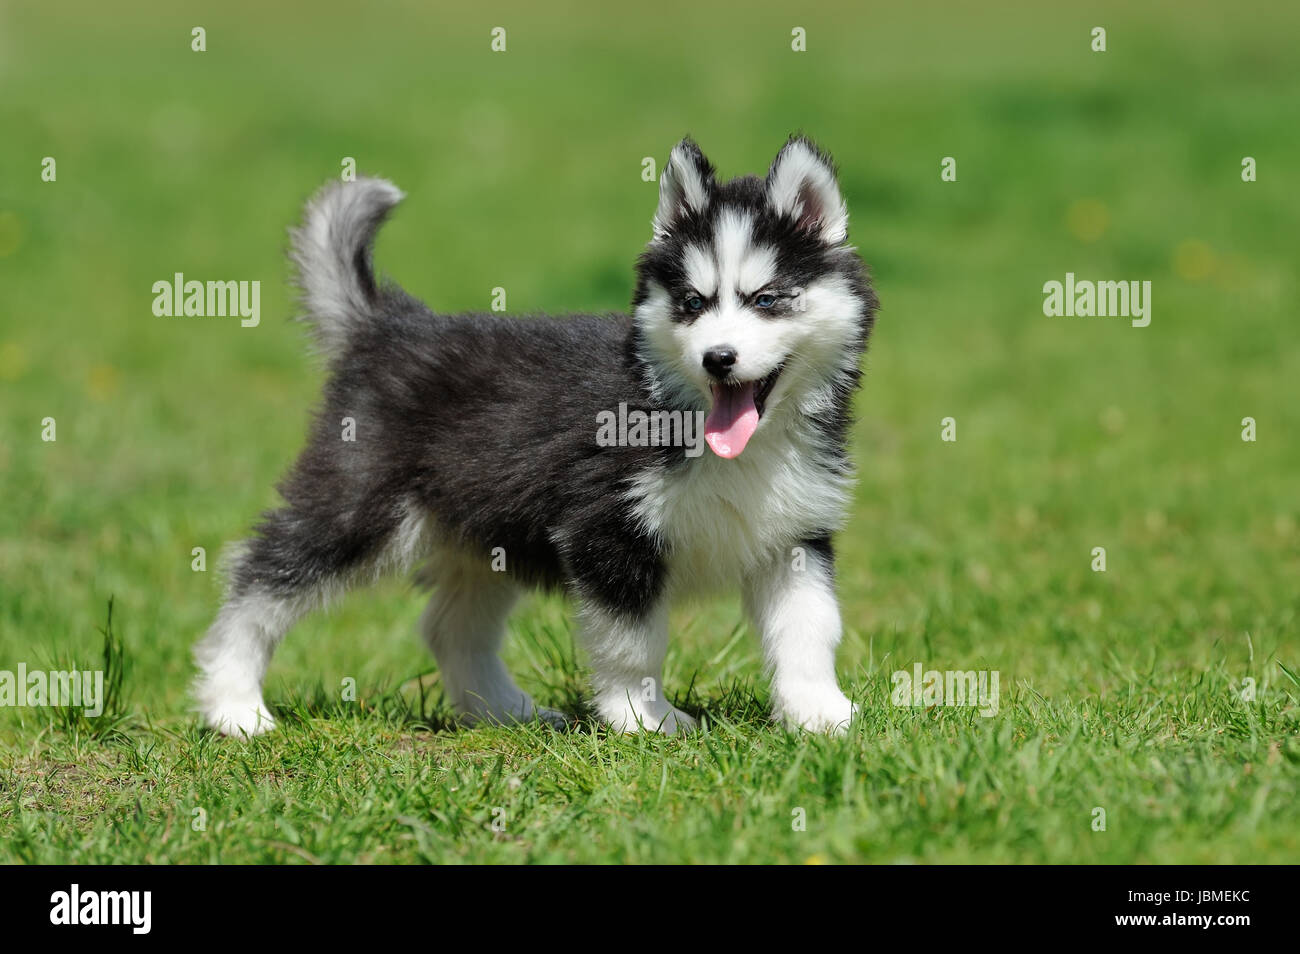 Cute Little Siberian Husky Puppy In Grass Stock Photo 144894720 Alamy